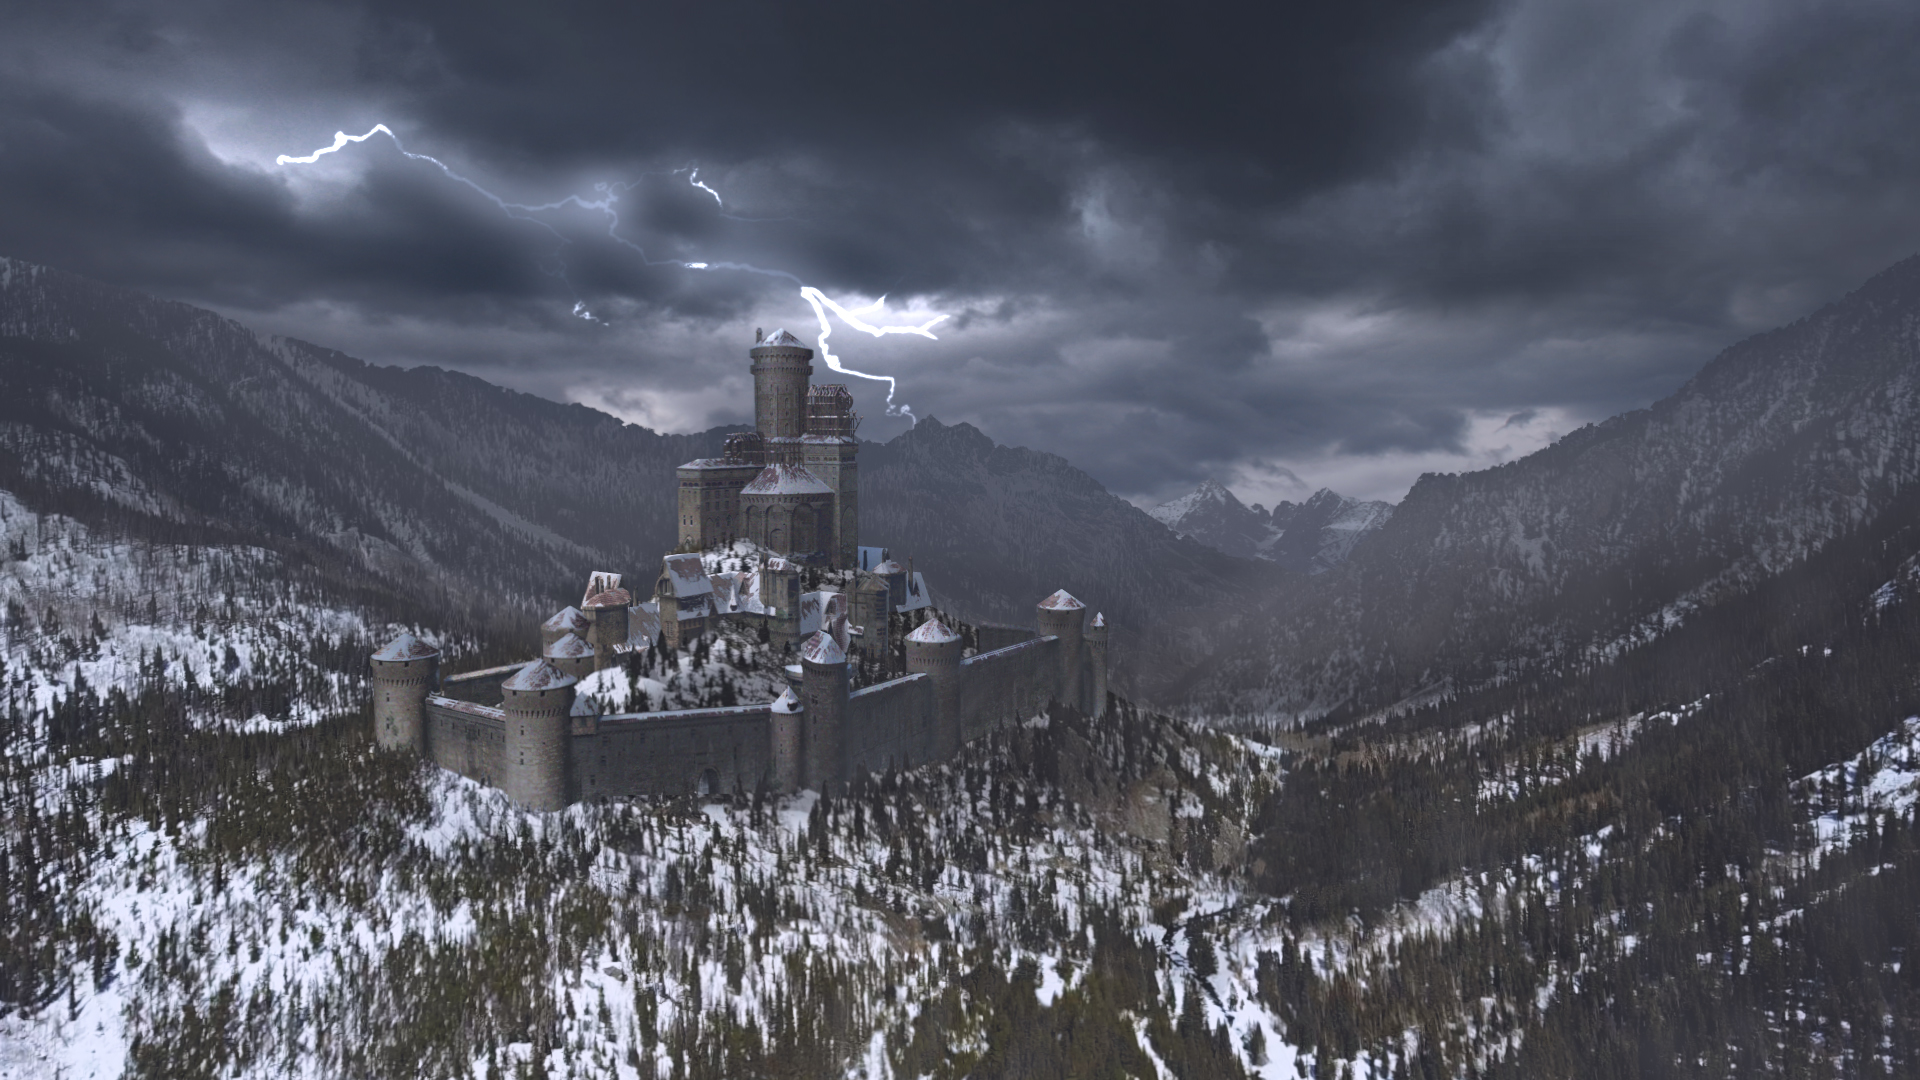 LightingCastel237